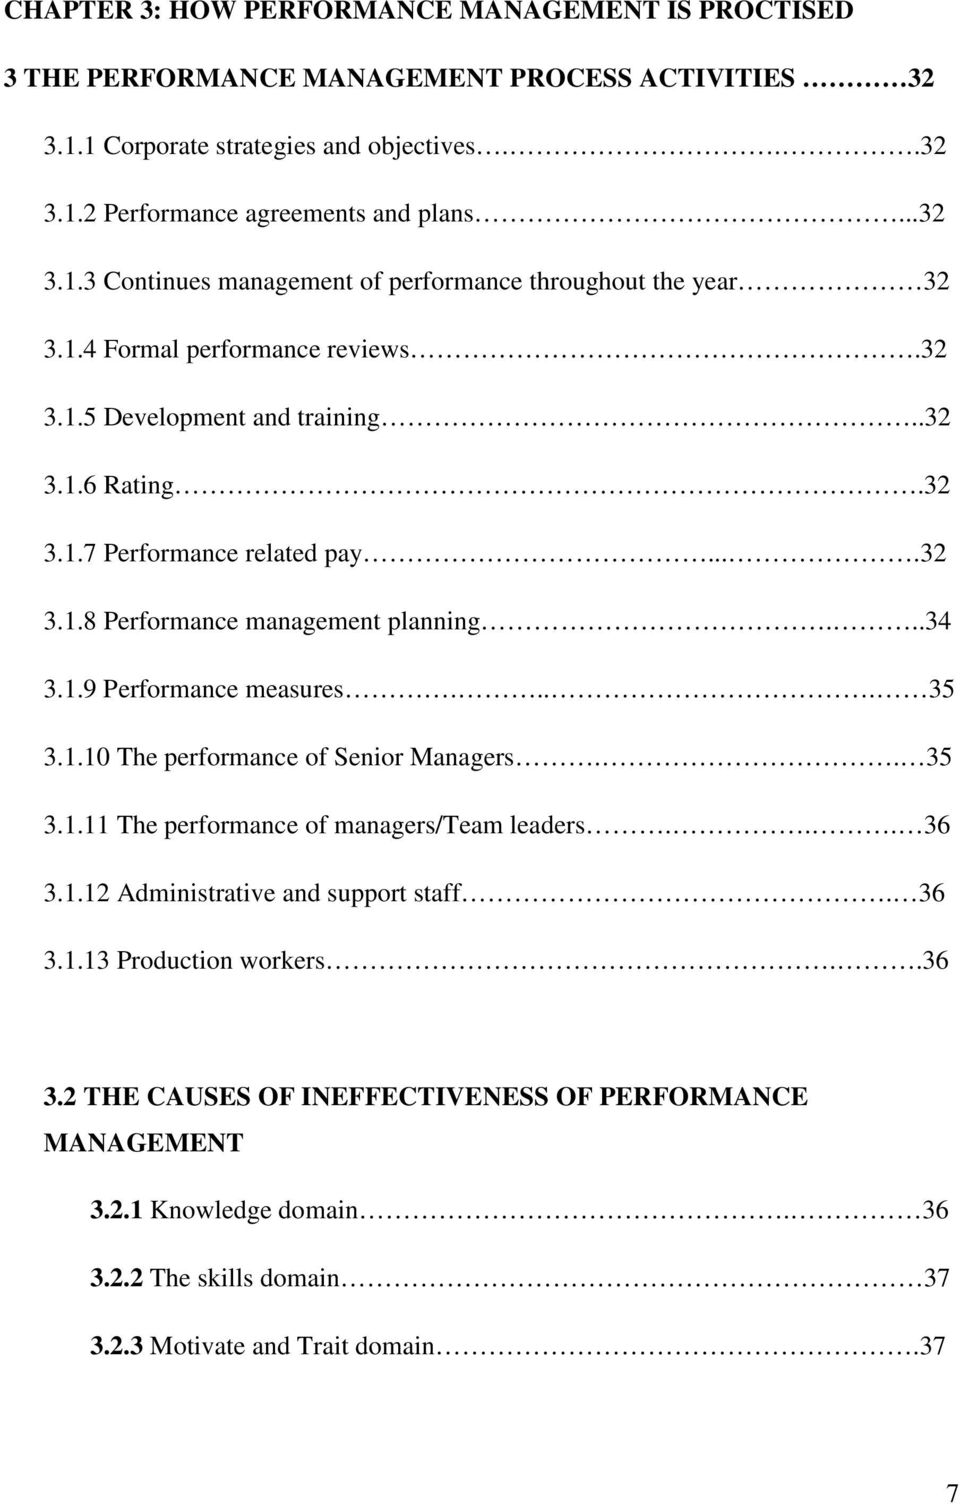 ... 35 3.1.10 The performance of Senior Managers.. 35 3.1.11 The performance of managers/team leaders... 36 3.1.12 Administrative and support staff. 36 3.1.13 Production workers..36 3.2 THE CAUSES OF INEFFECTIVENESS OF PERFORMANCE MANAGEMENT 3.